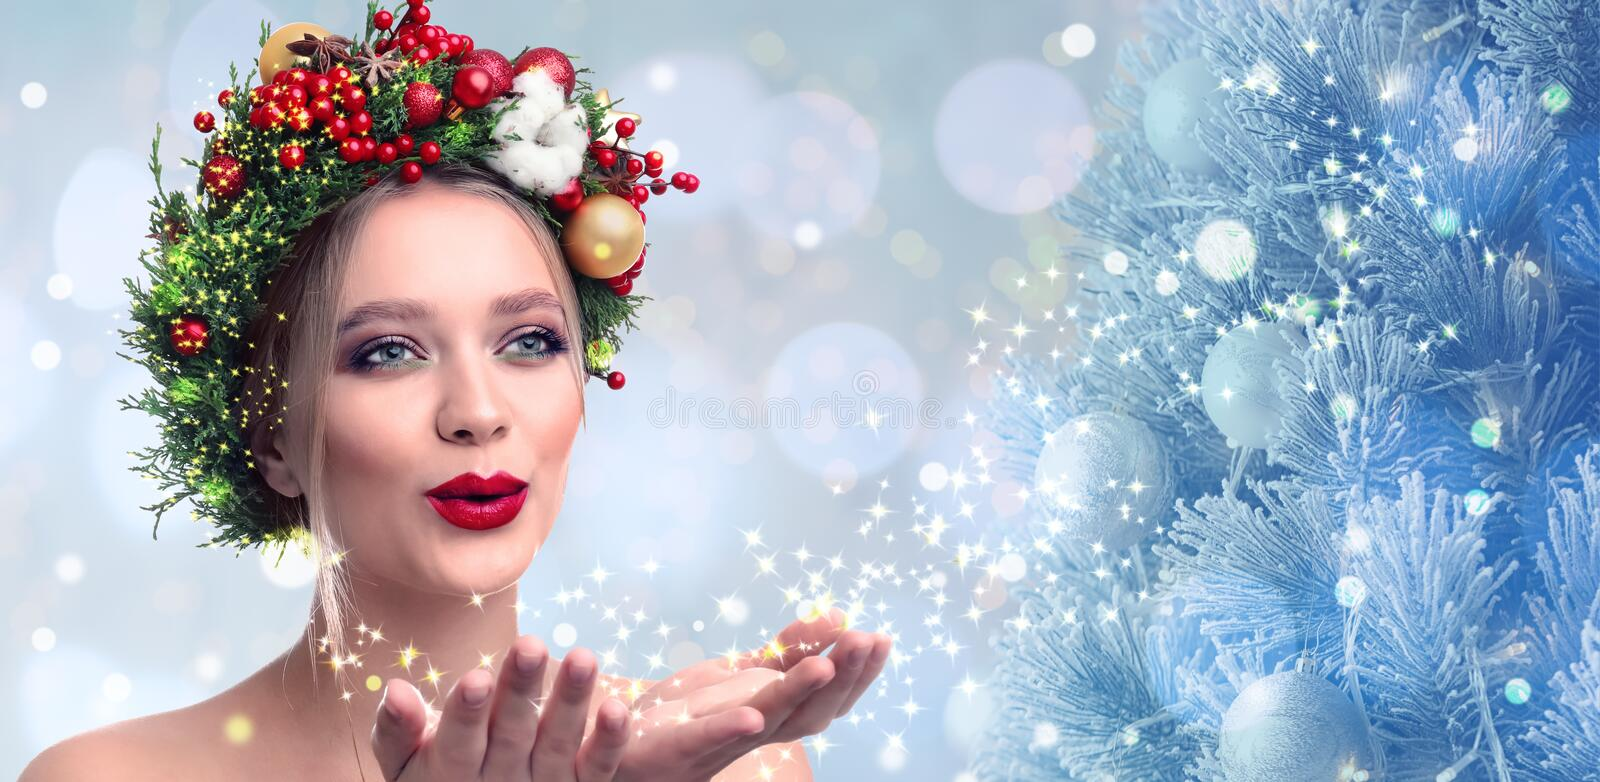 Beautiful young woman with Christmas wreath blowing magical snowy dust on blurred background. Bokeh effect stock photography